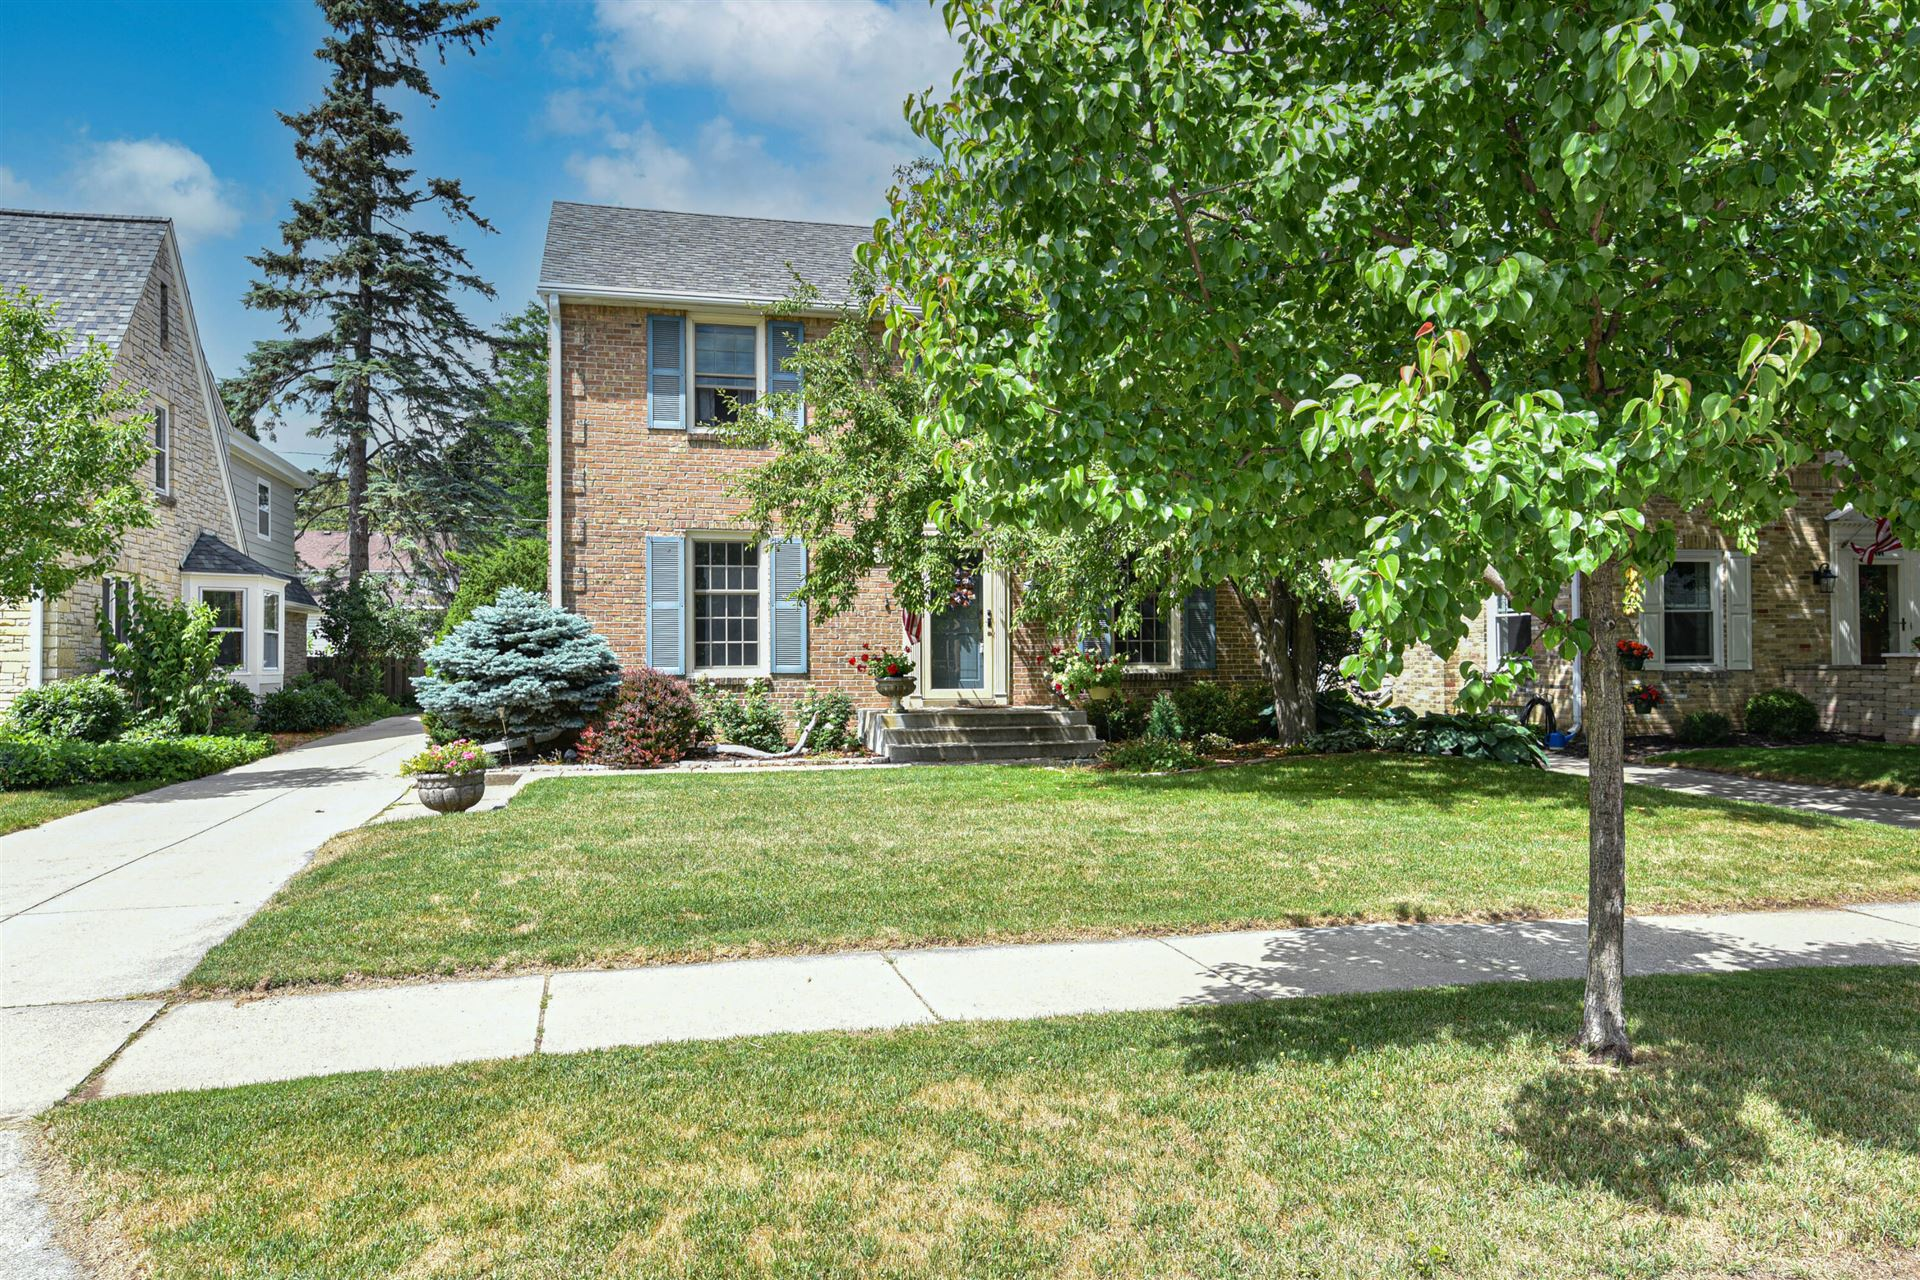 9412 Beverly Pl, Wauwatosa, WI 53226 - MLS#: 1751450